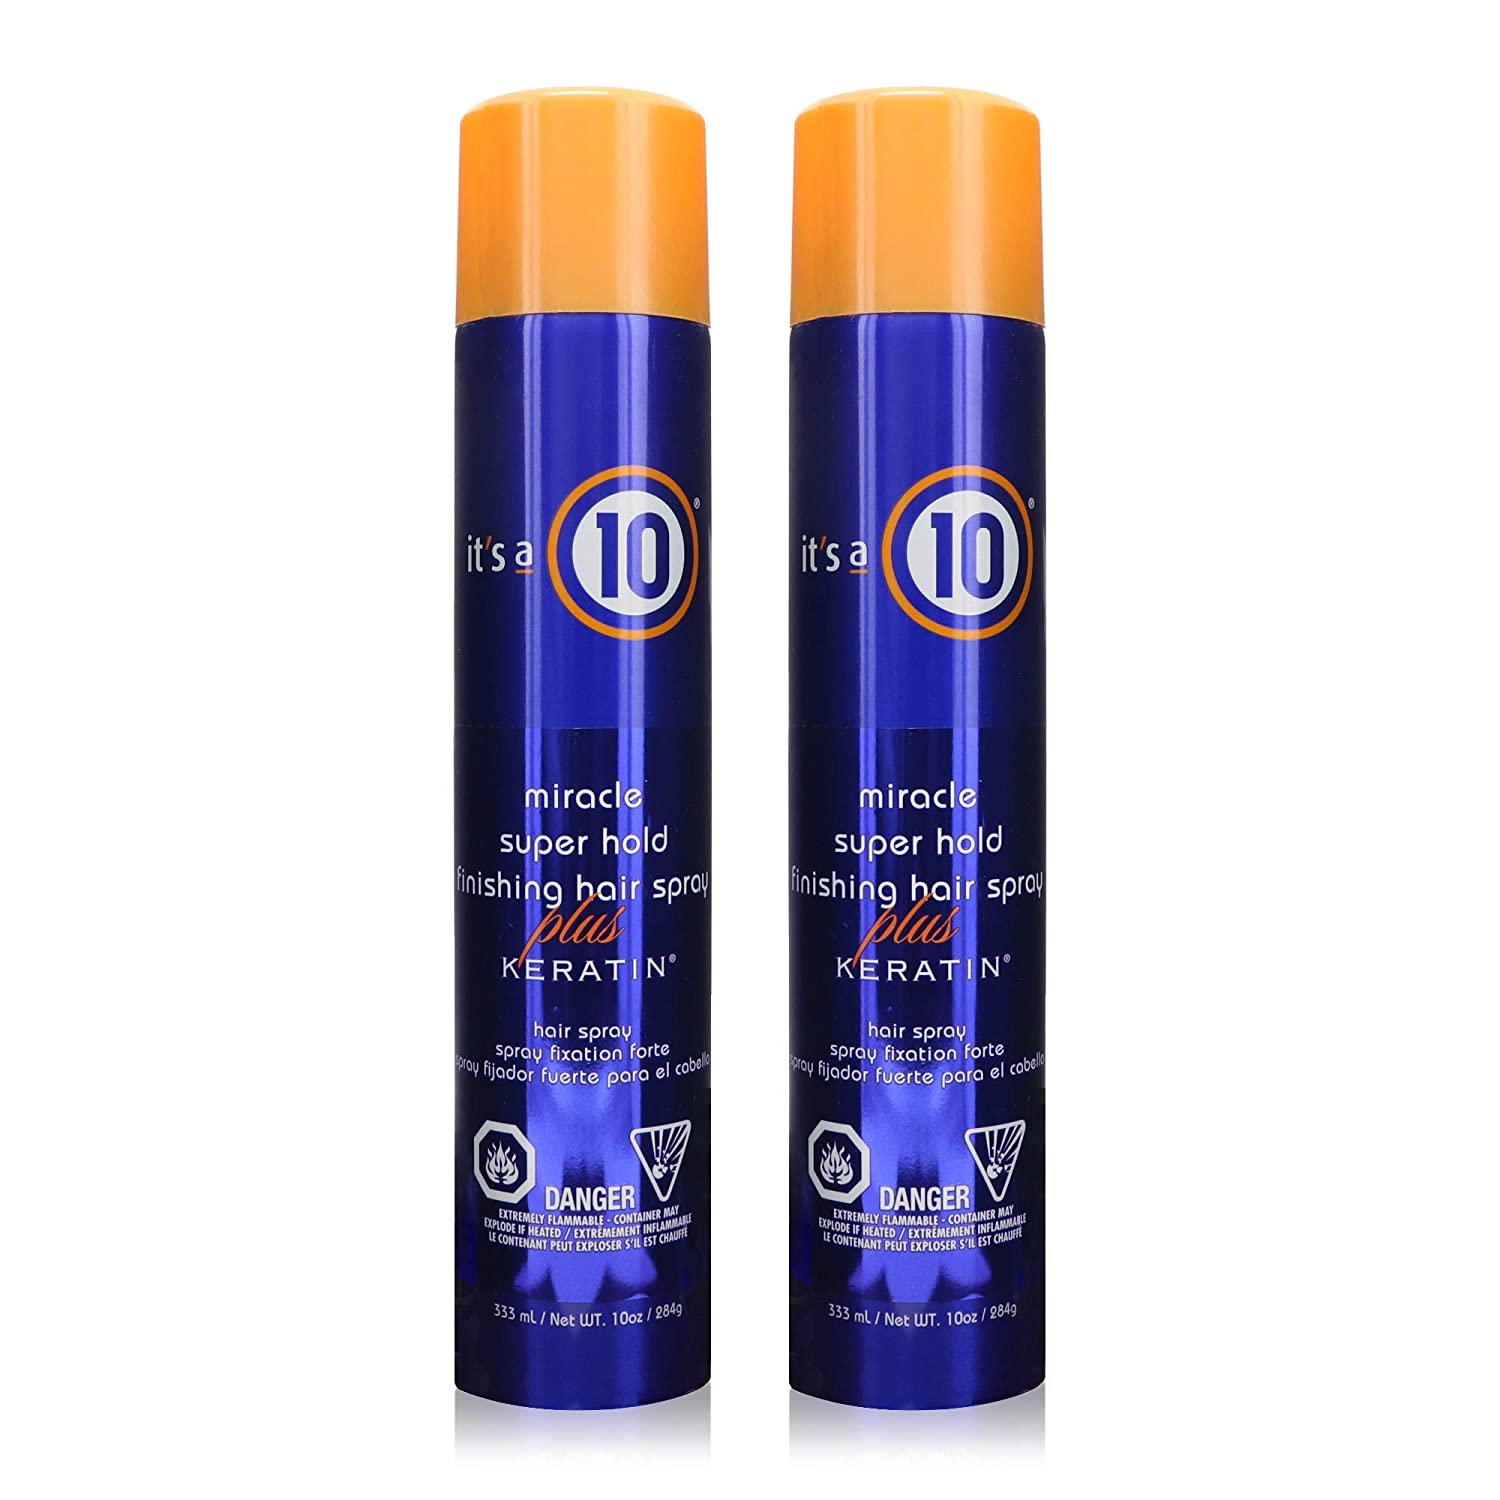 It's a 10 Haircare Miracle Super Hold Finishing Spray Plus Keratin, 10 fl. oz. (Pack of 2)